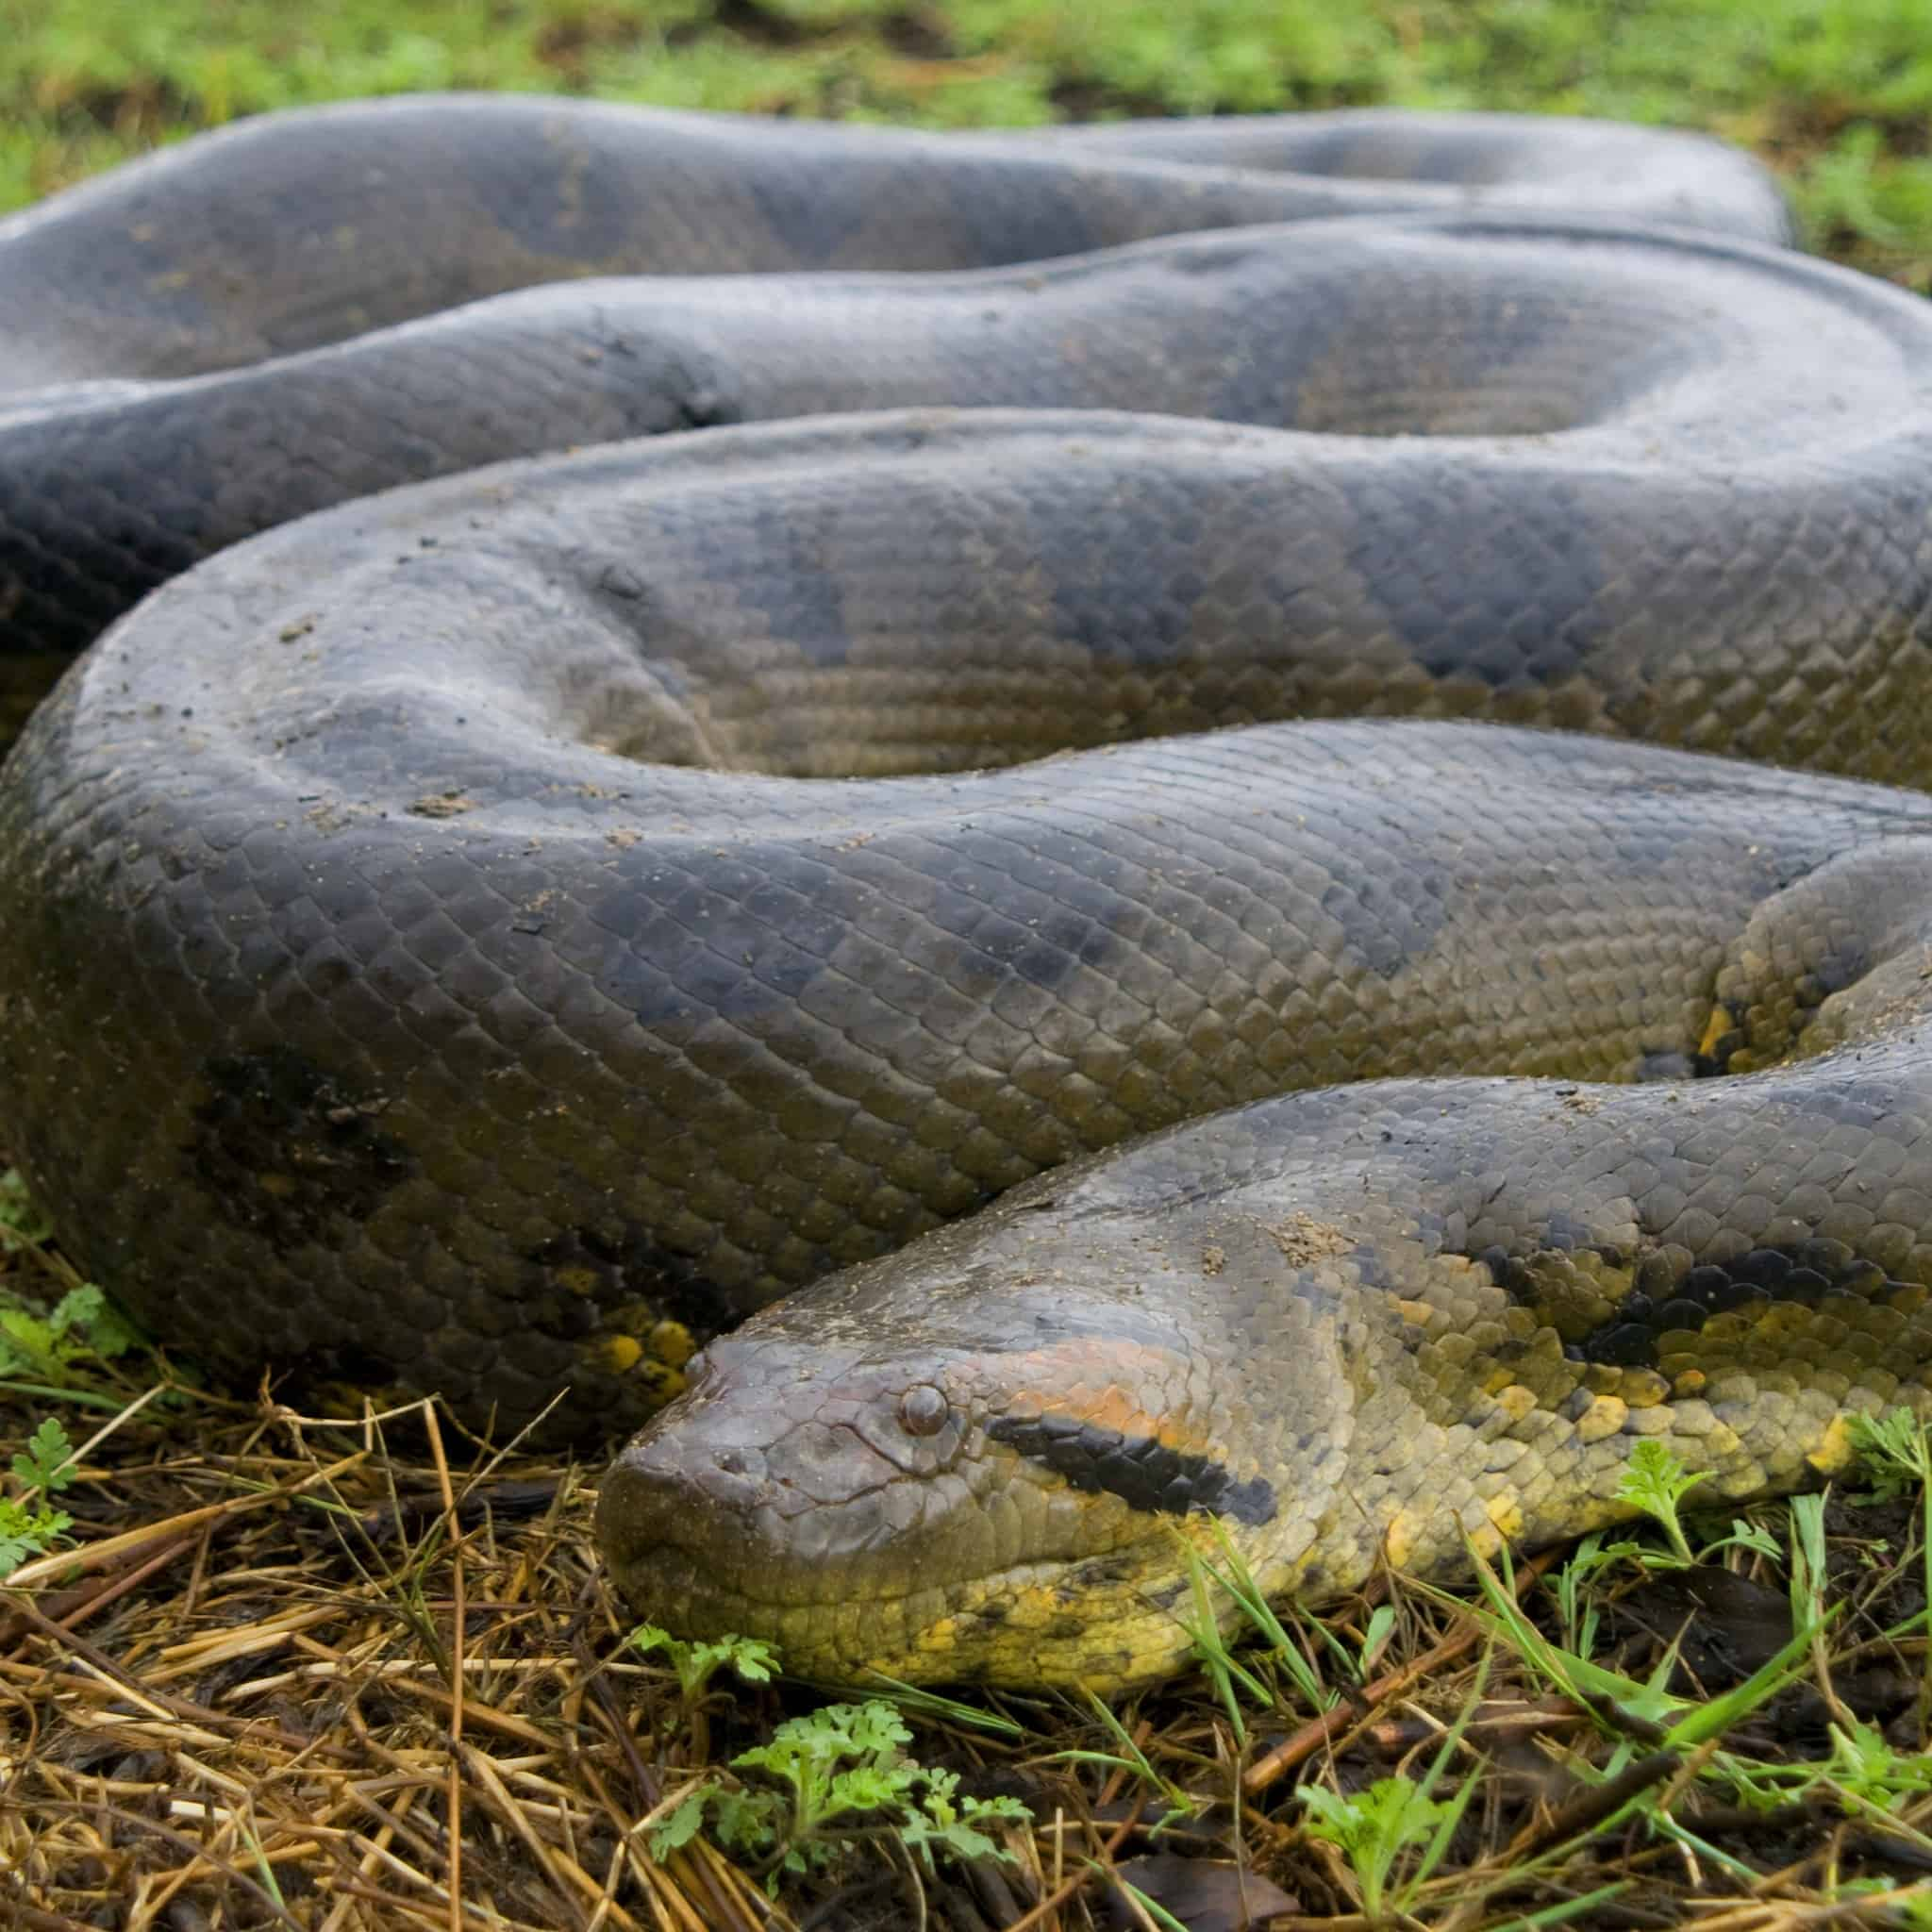 Green Anaconda- biggest snake